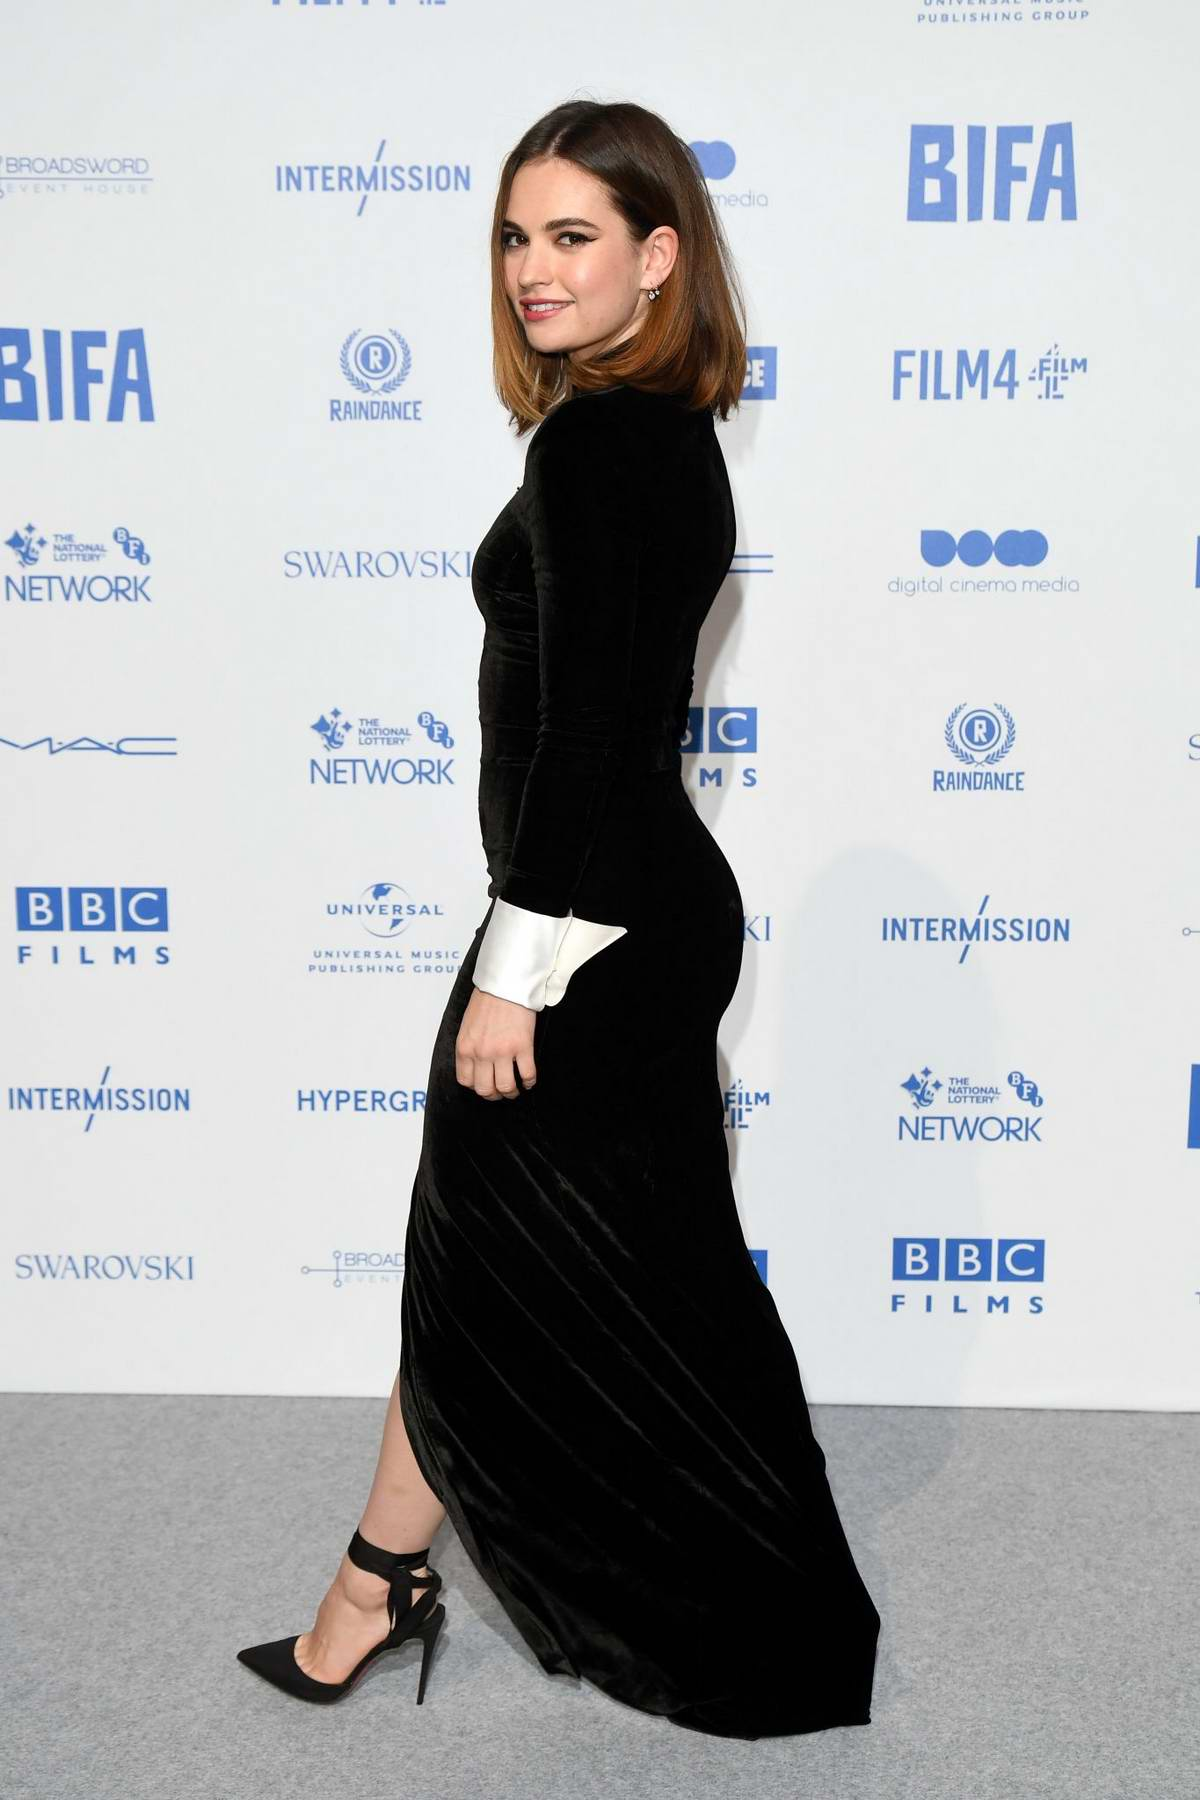 Lily James attends the British Independent Film Awards 2019 at Old Billingsgate in London, UK